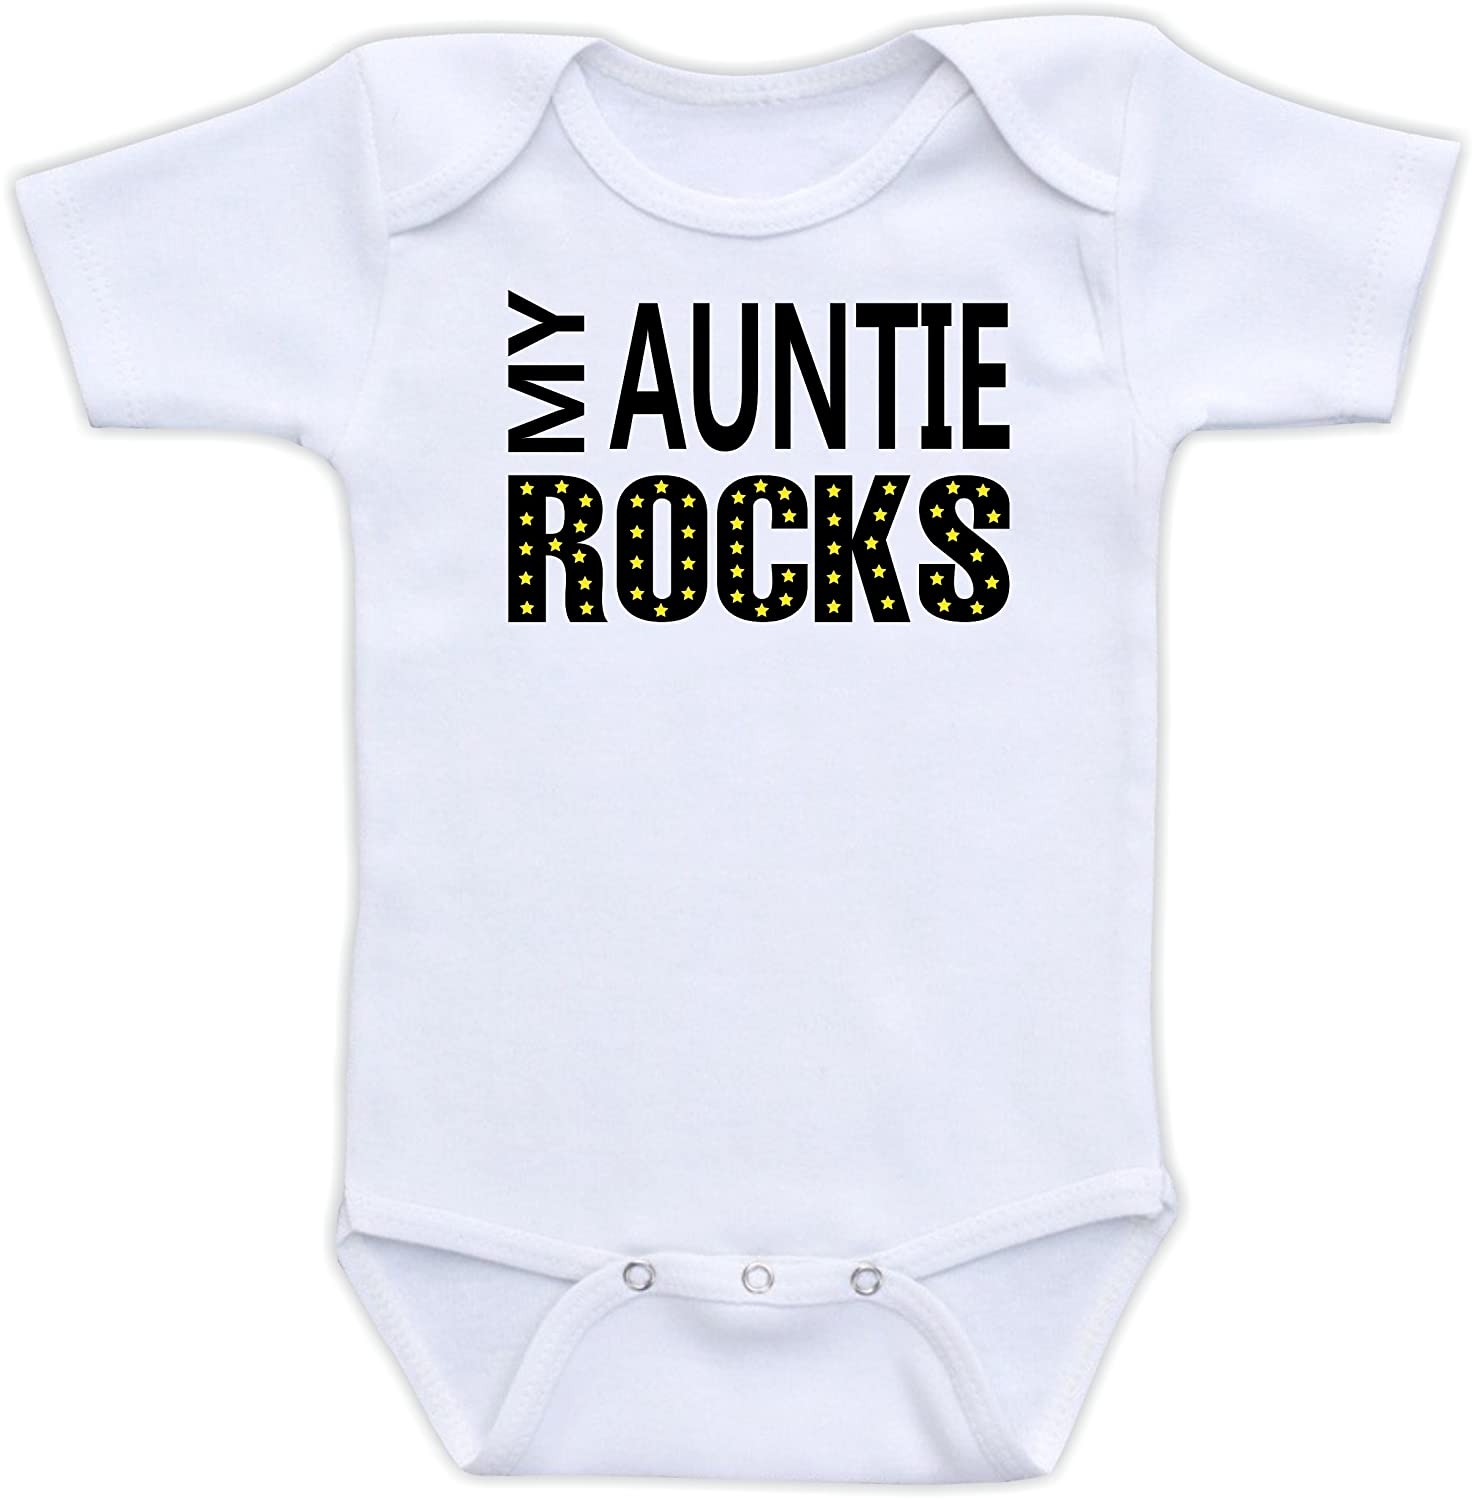 2b1115d654c45 Amazon.com: My Auntie Rocks - Cute Baby Clothes Gender Neutral: Clothing